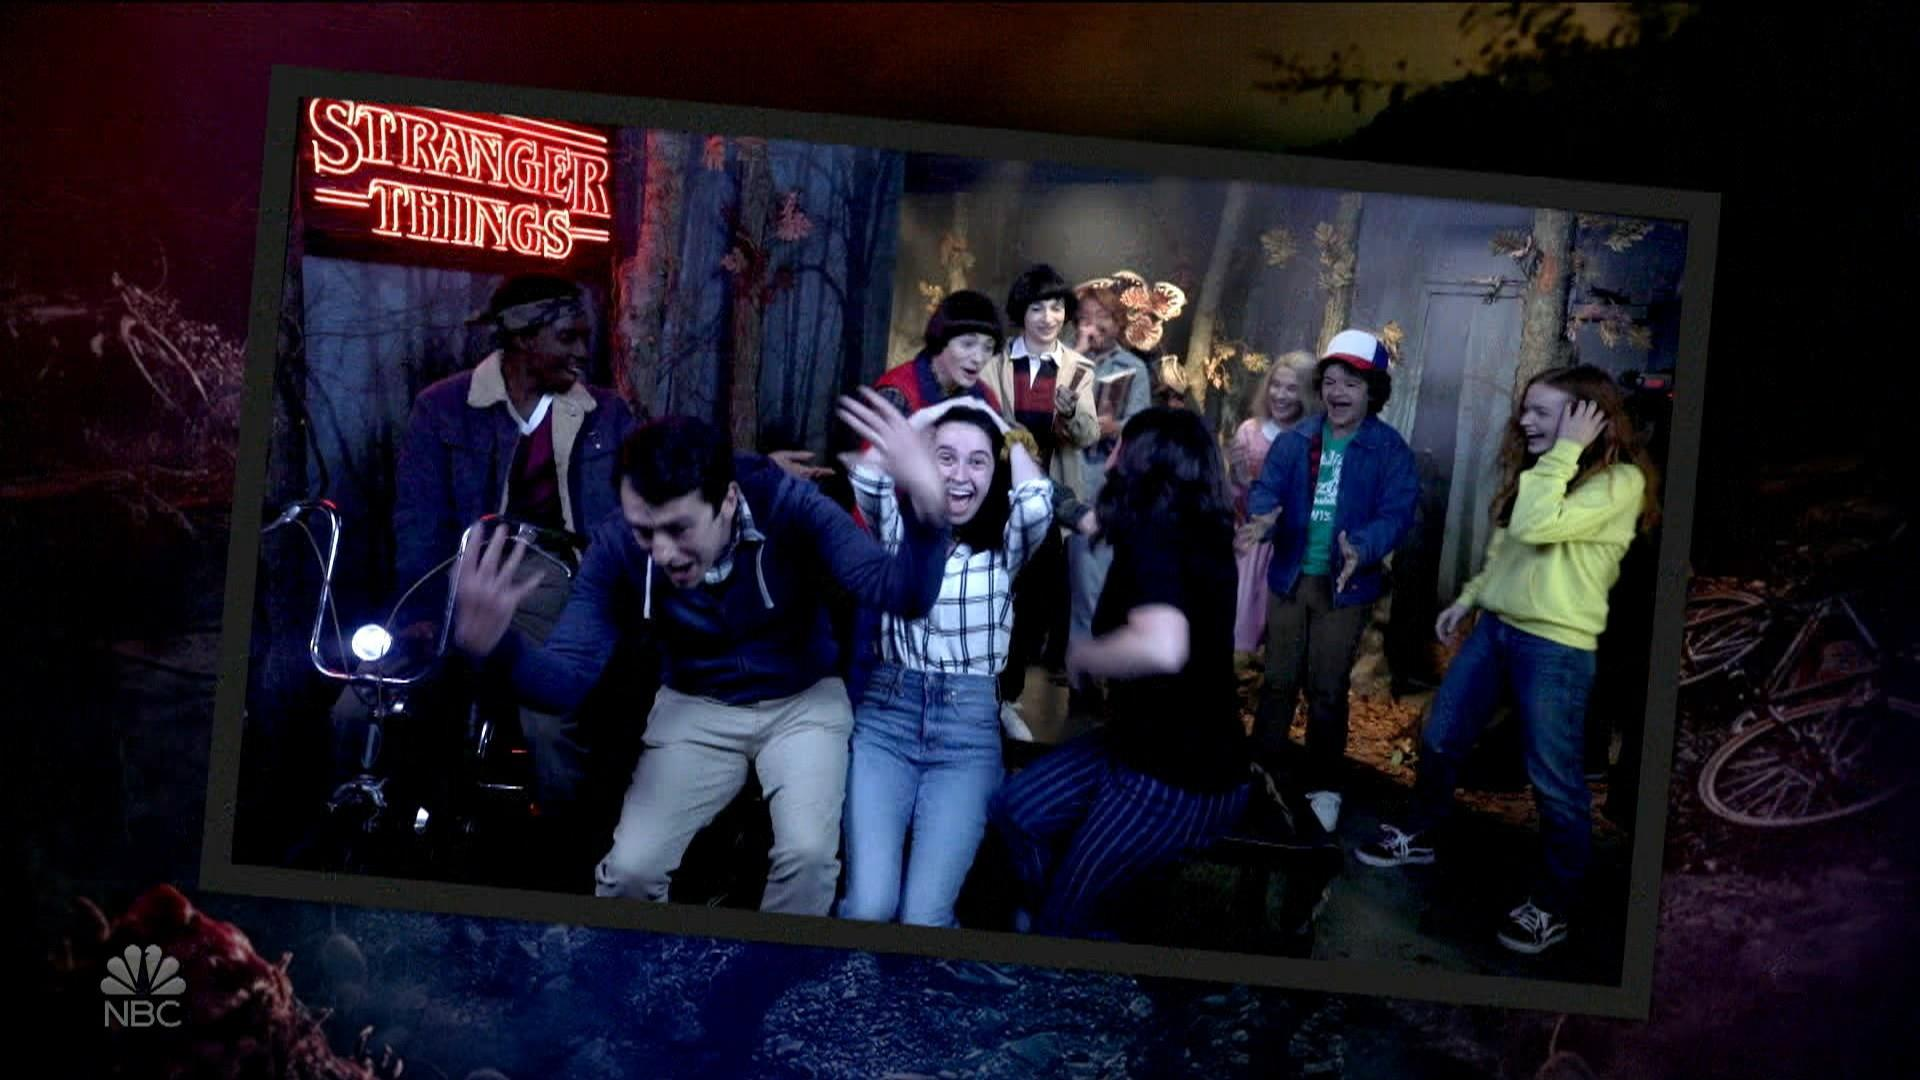 Jimmy Fallon and 'Stranger Things' kids trick tourists at wax museum